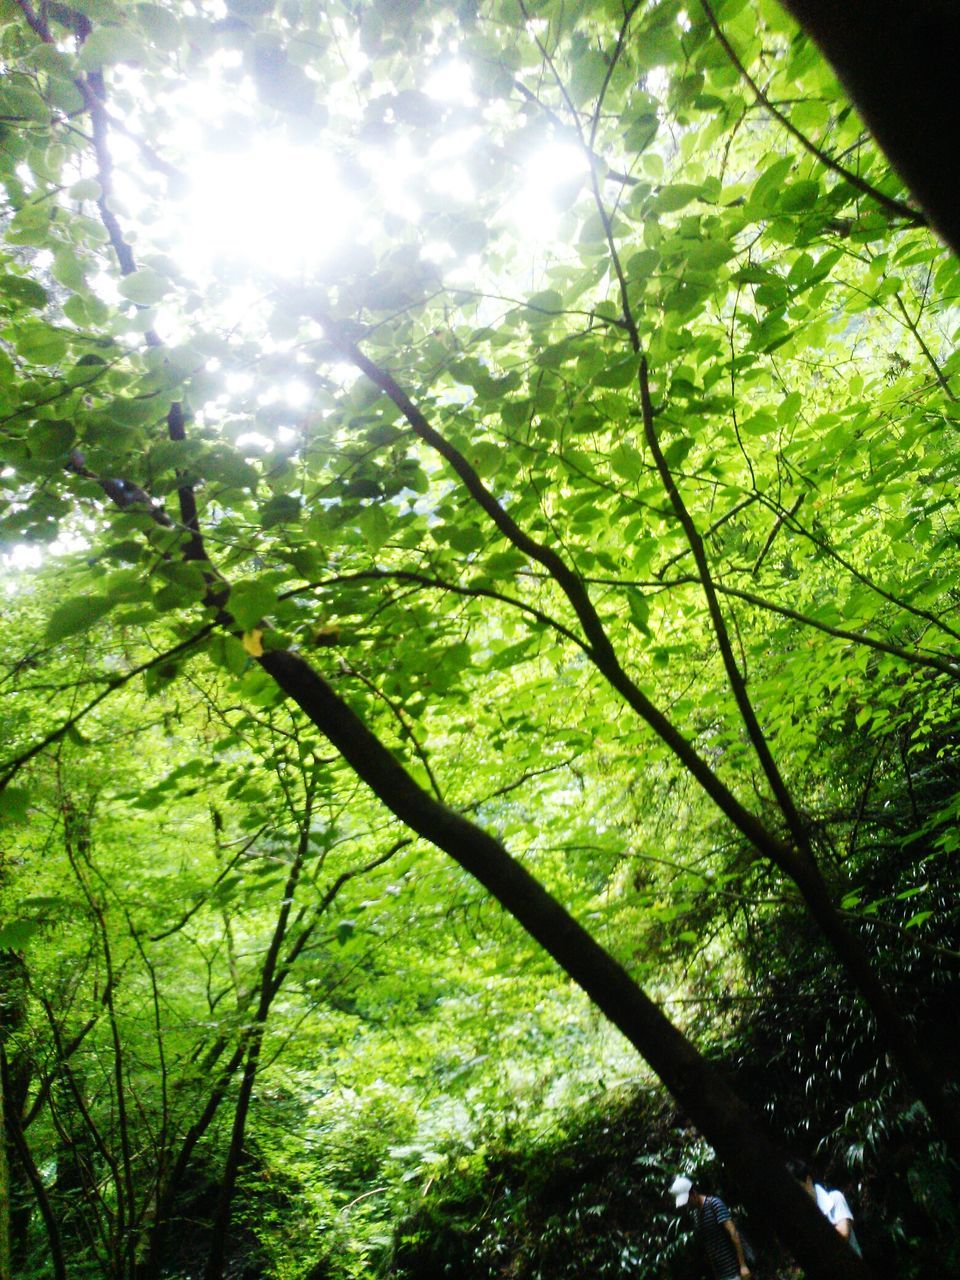 growth, nature, beauty in nature, green color, day, no people, low angle view, outdoors, sunlight, plant, backgrounds, leaf, branch, tree, freshness, close-up